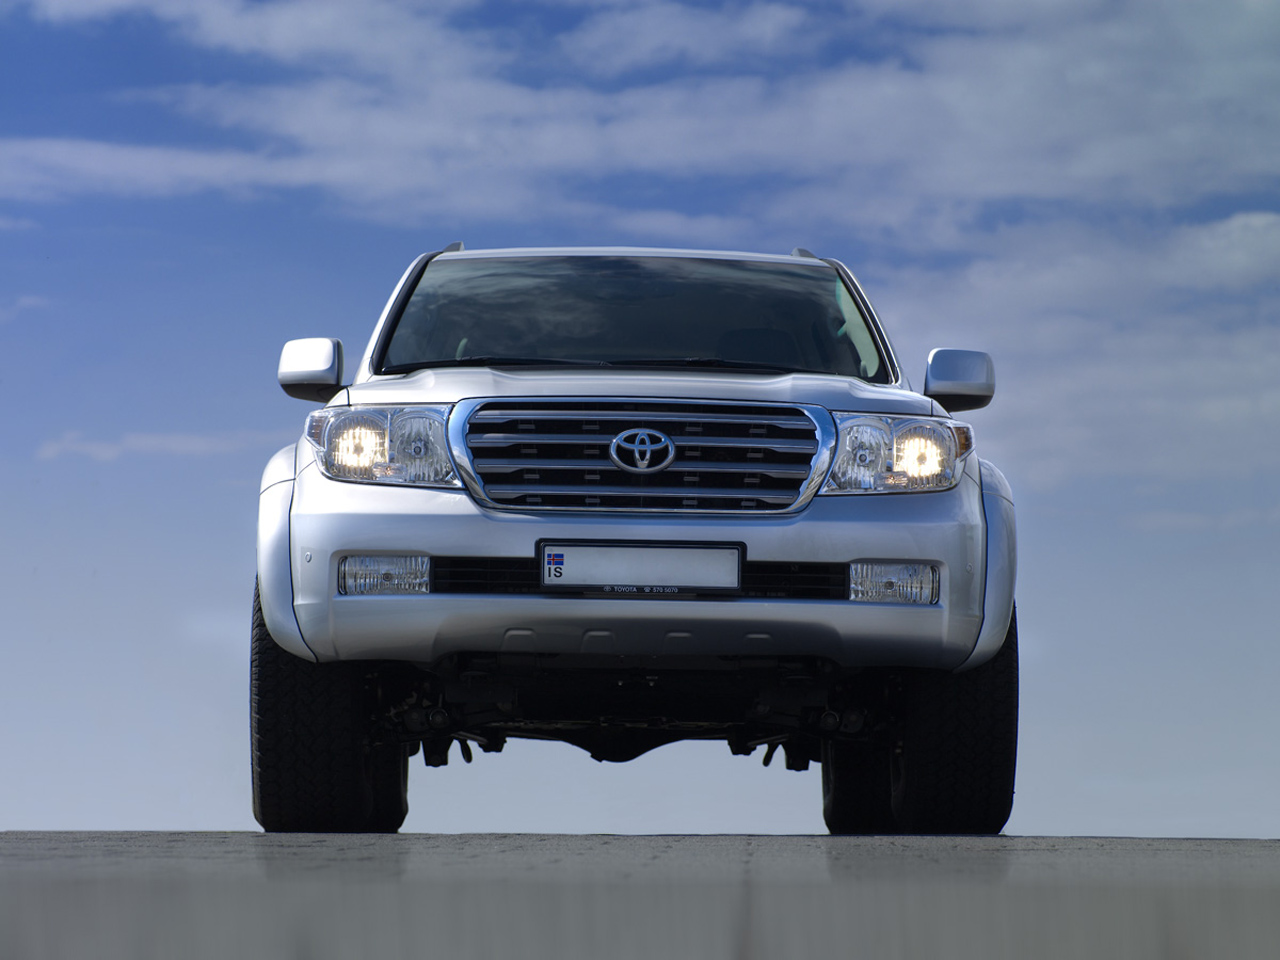 Arctic Trucks Toyota Land Cruiser 200 photo 61470